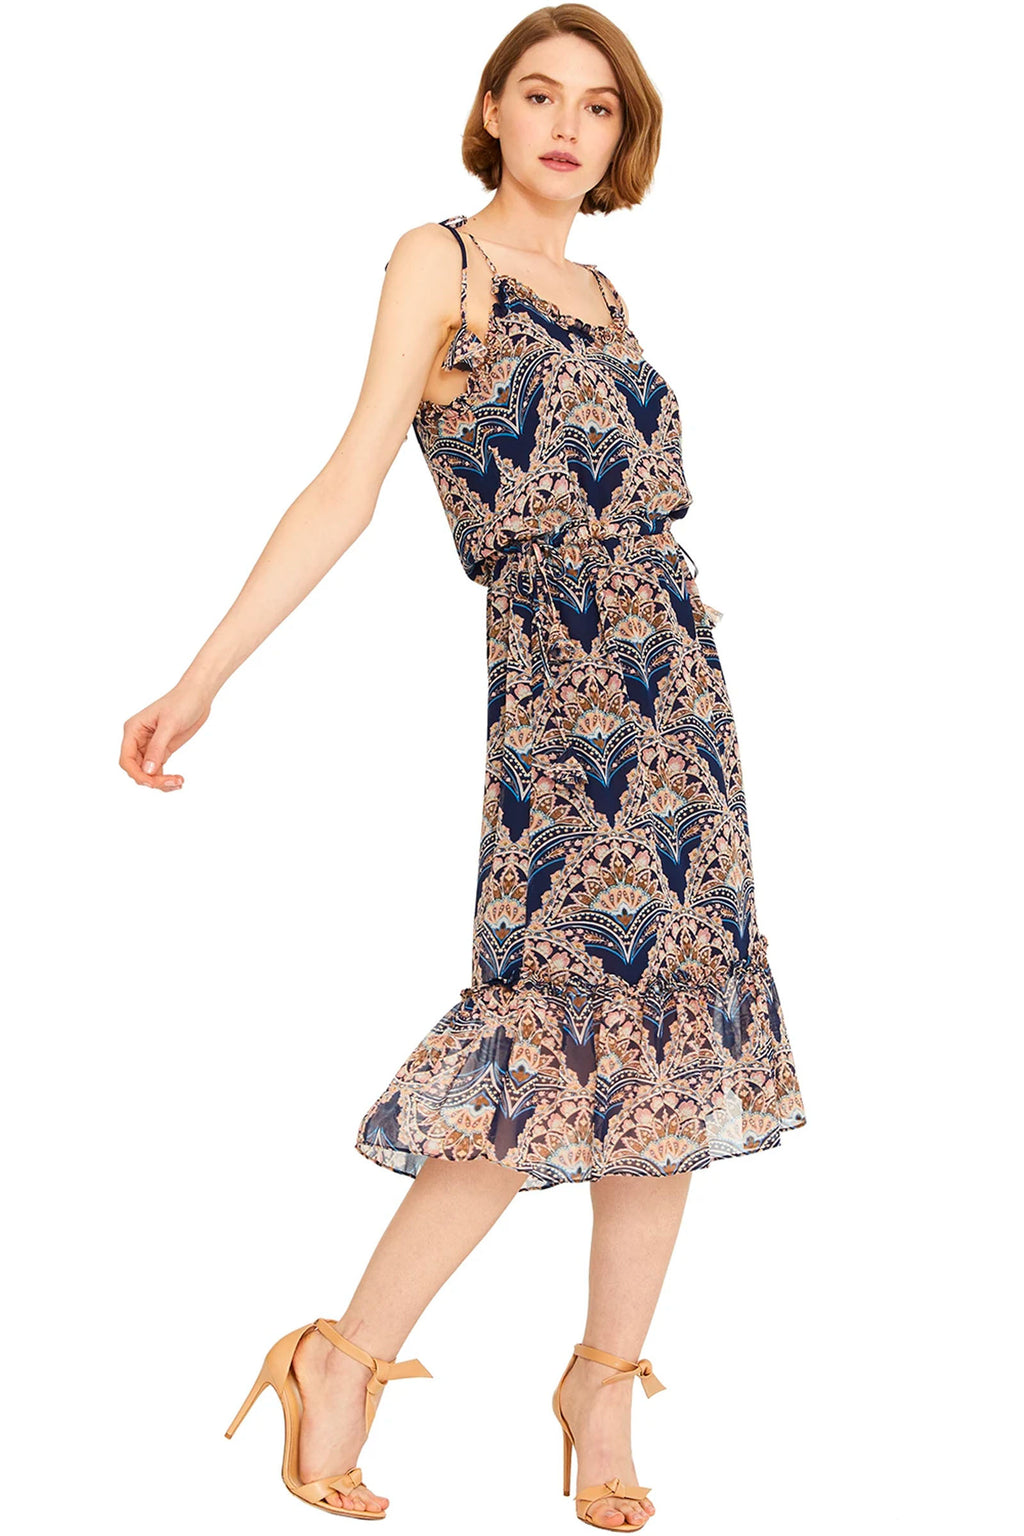 Misa Gianella Dress in Resort Paisley